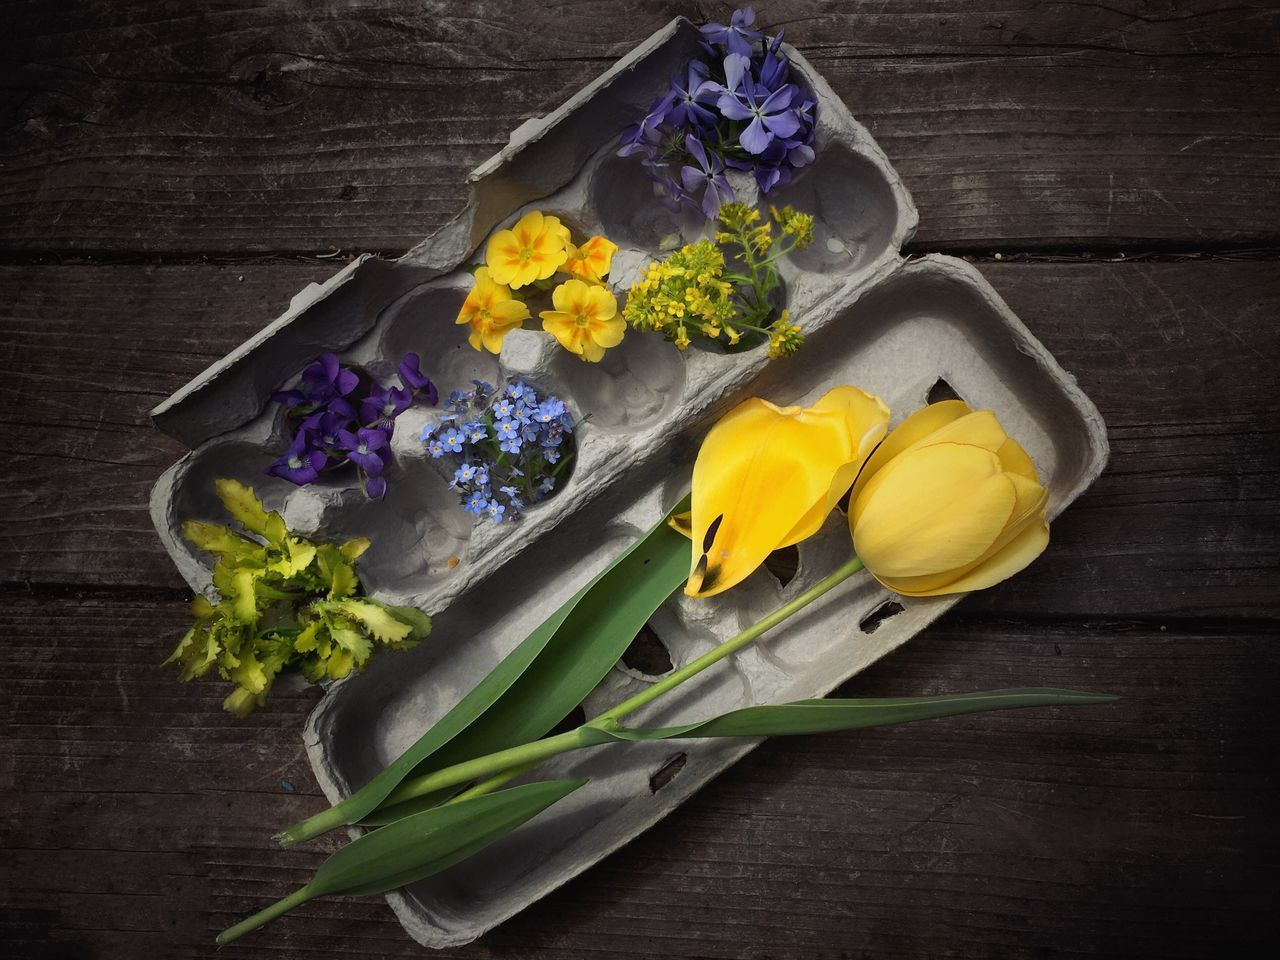 Crate of Colors Flower High Angle View No People Yellow Studio Shot Close-up Flower Head Freshness Colorful Beauty In Nature Still Life Petal Fragility Tree Trunk Egg Crate Spring Flowers Tulips